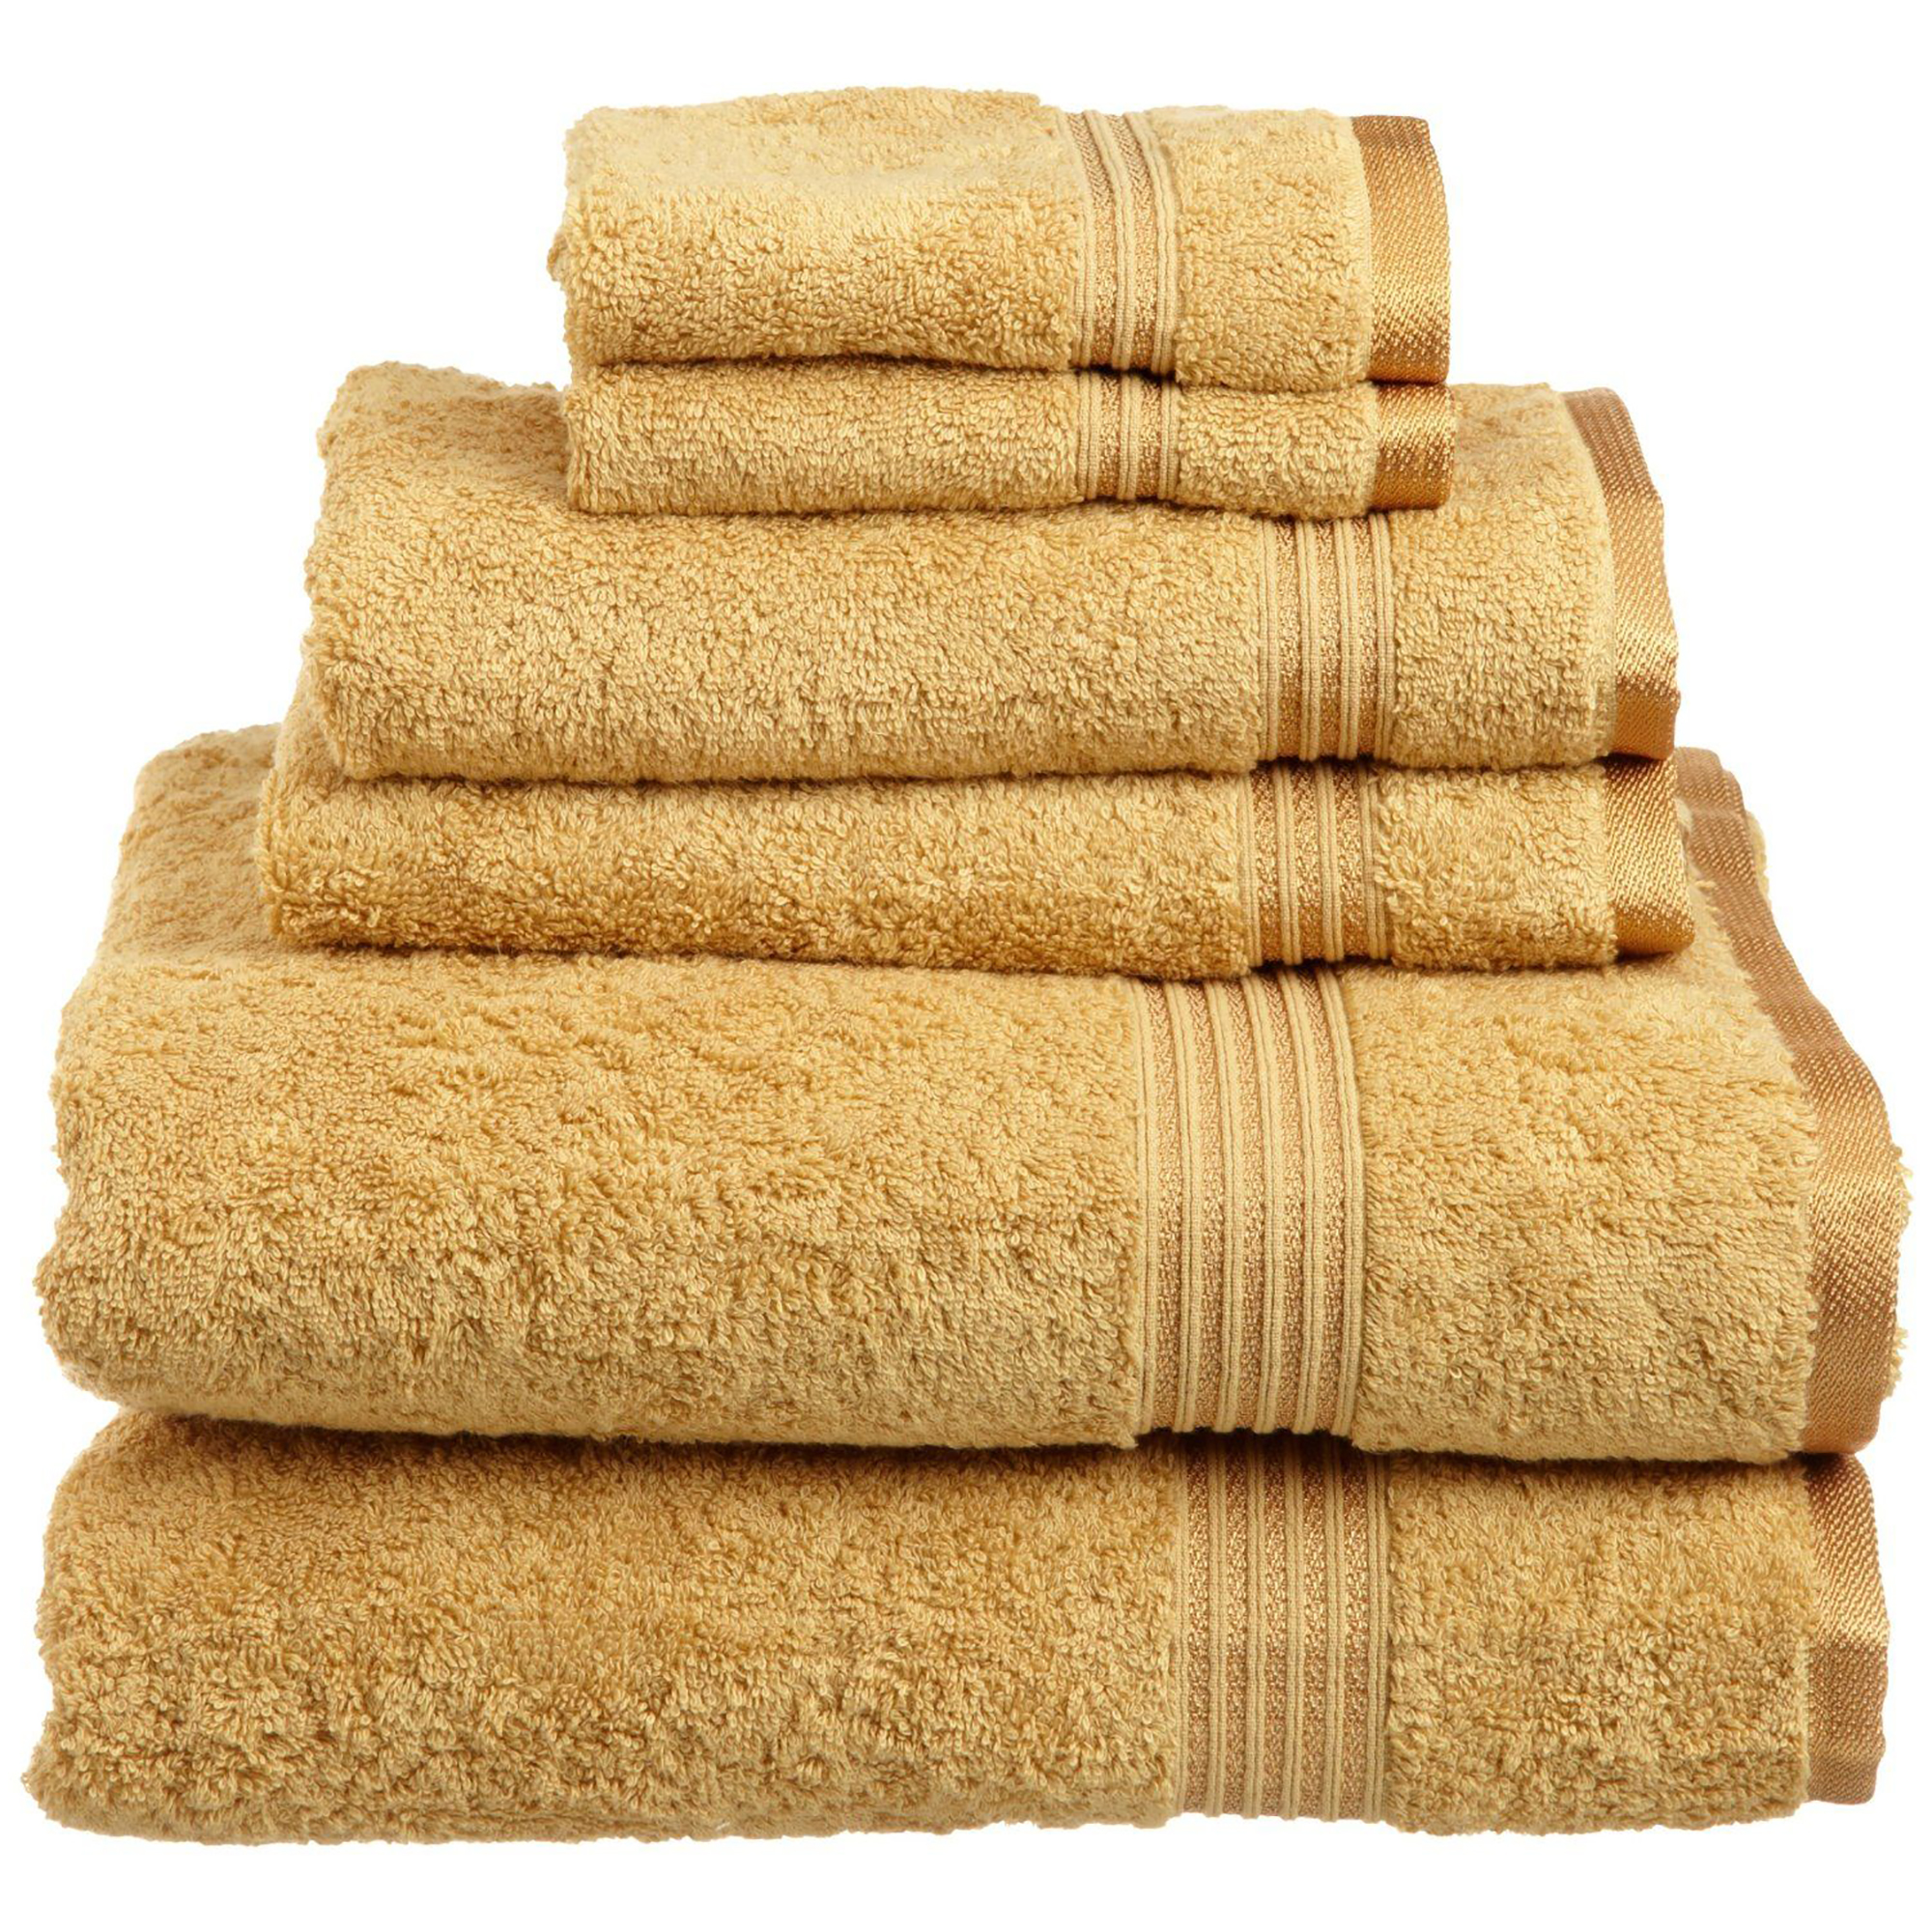 Superior 600GSM Long-Staple Combed Cotton 6-Piece Towel Set